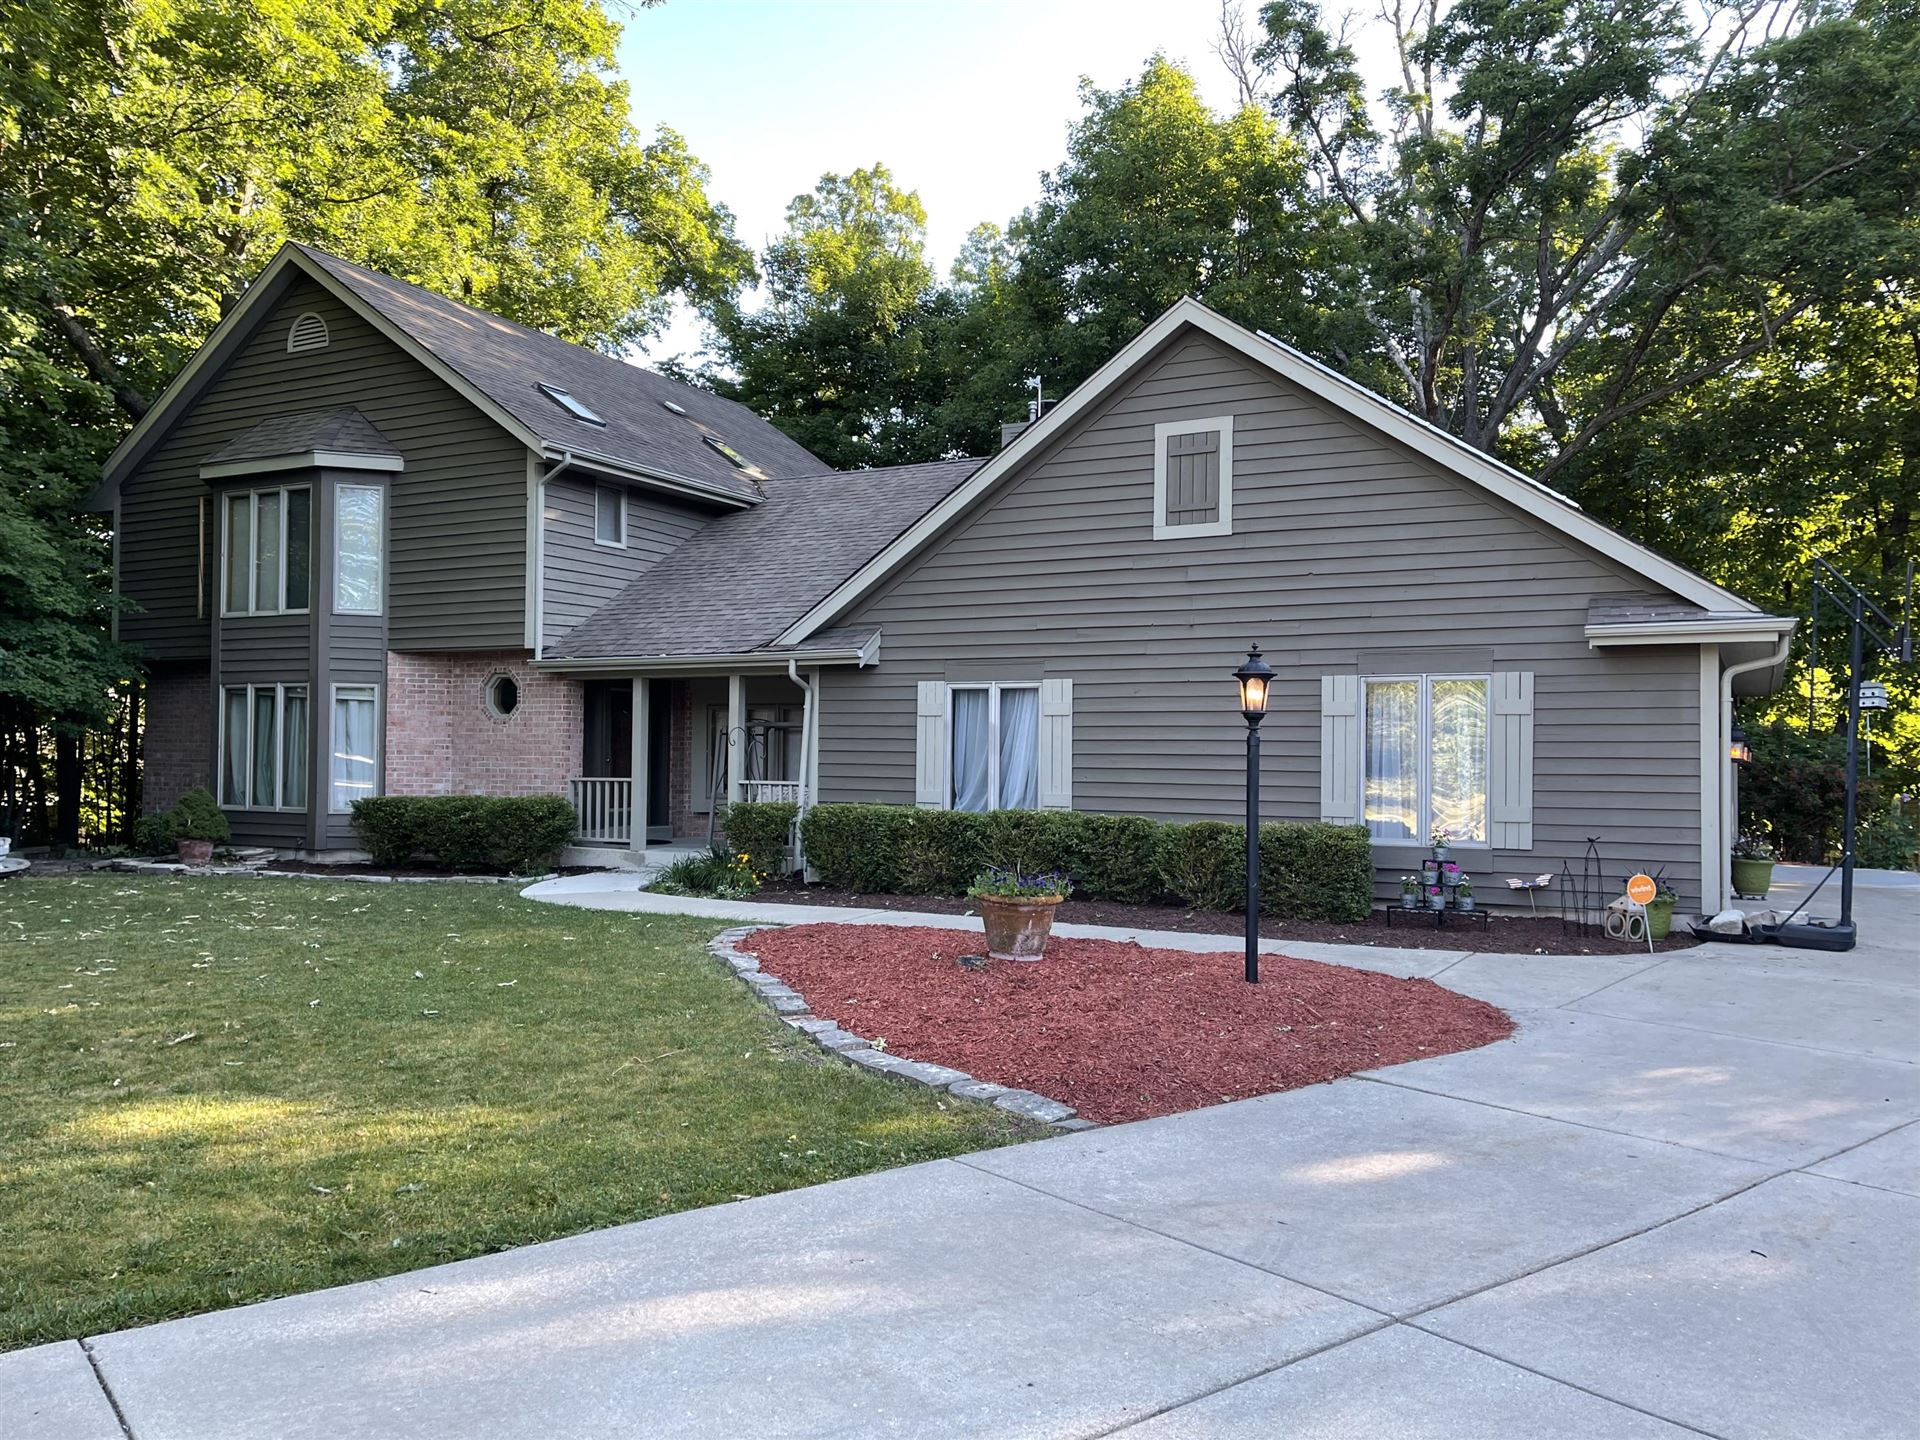 3532 S 121st Ct, Greenfield, WI 53228 - #: 1746546